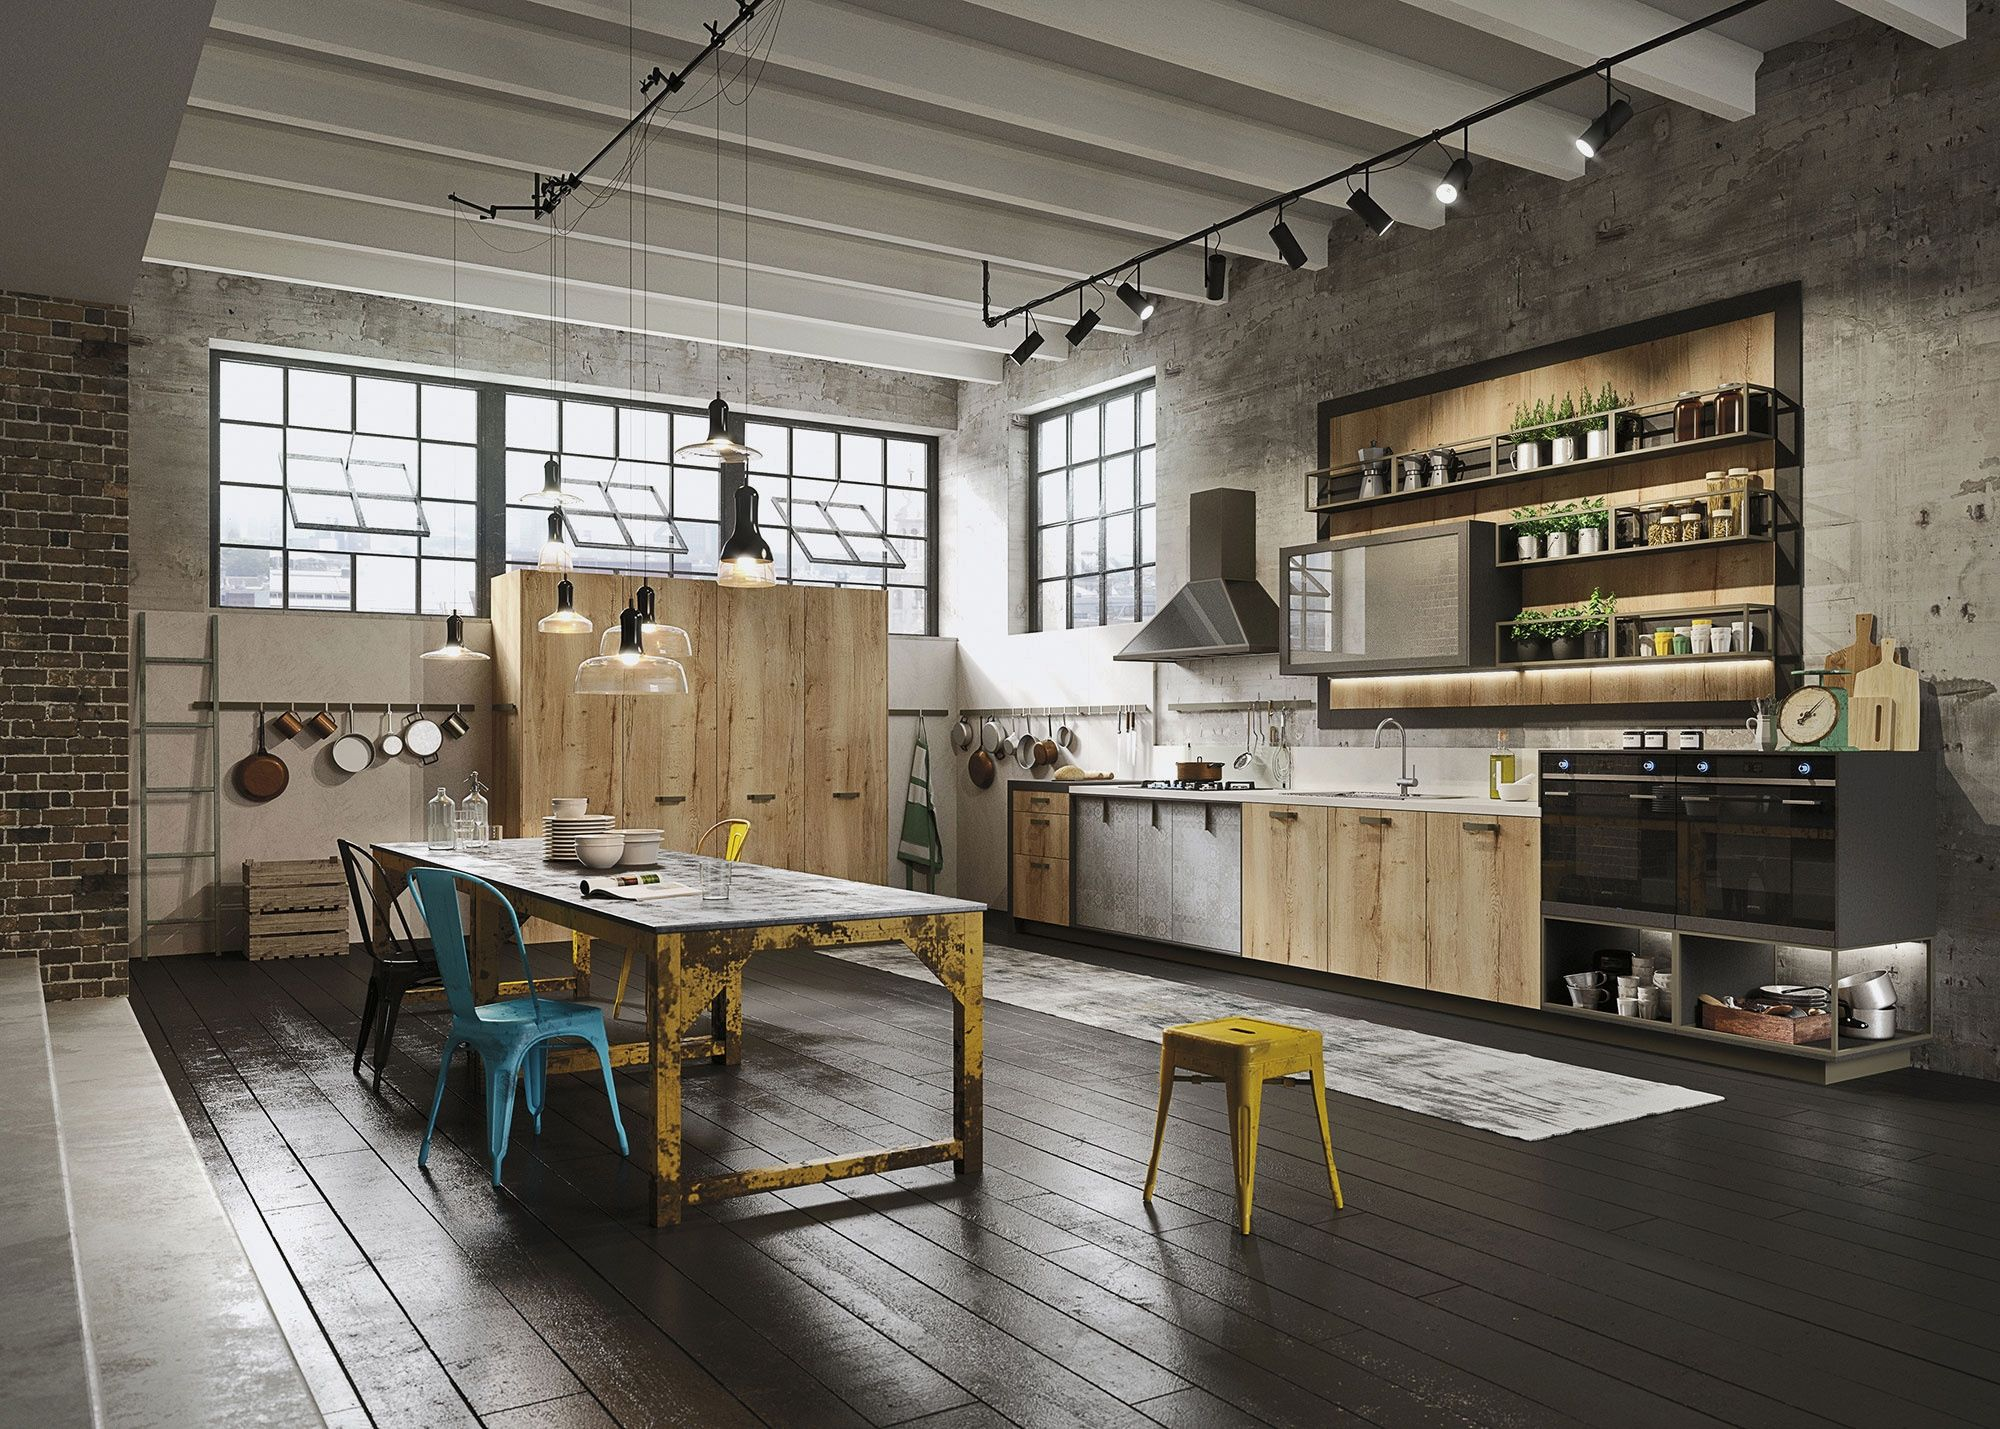 Awesome Urban Industrial Decor Ideas To Complement Your City Digs Kitchen Design Lofts 3 Urb Industrial Decor Kitchen Industrial Style Kitchen Loft Kitchen